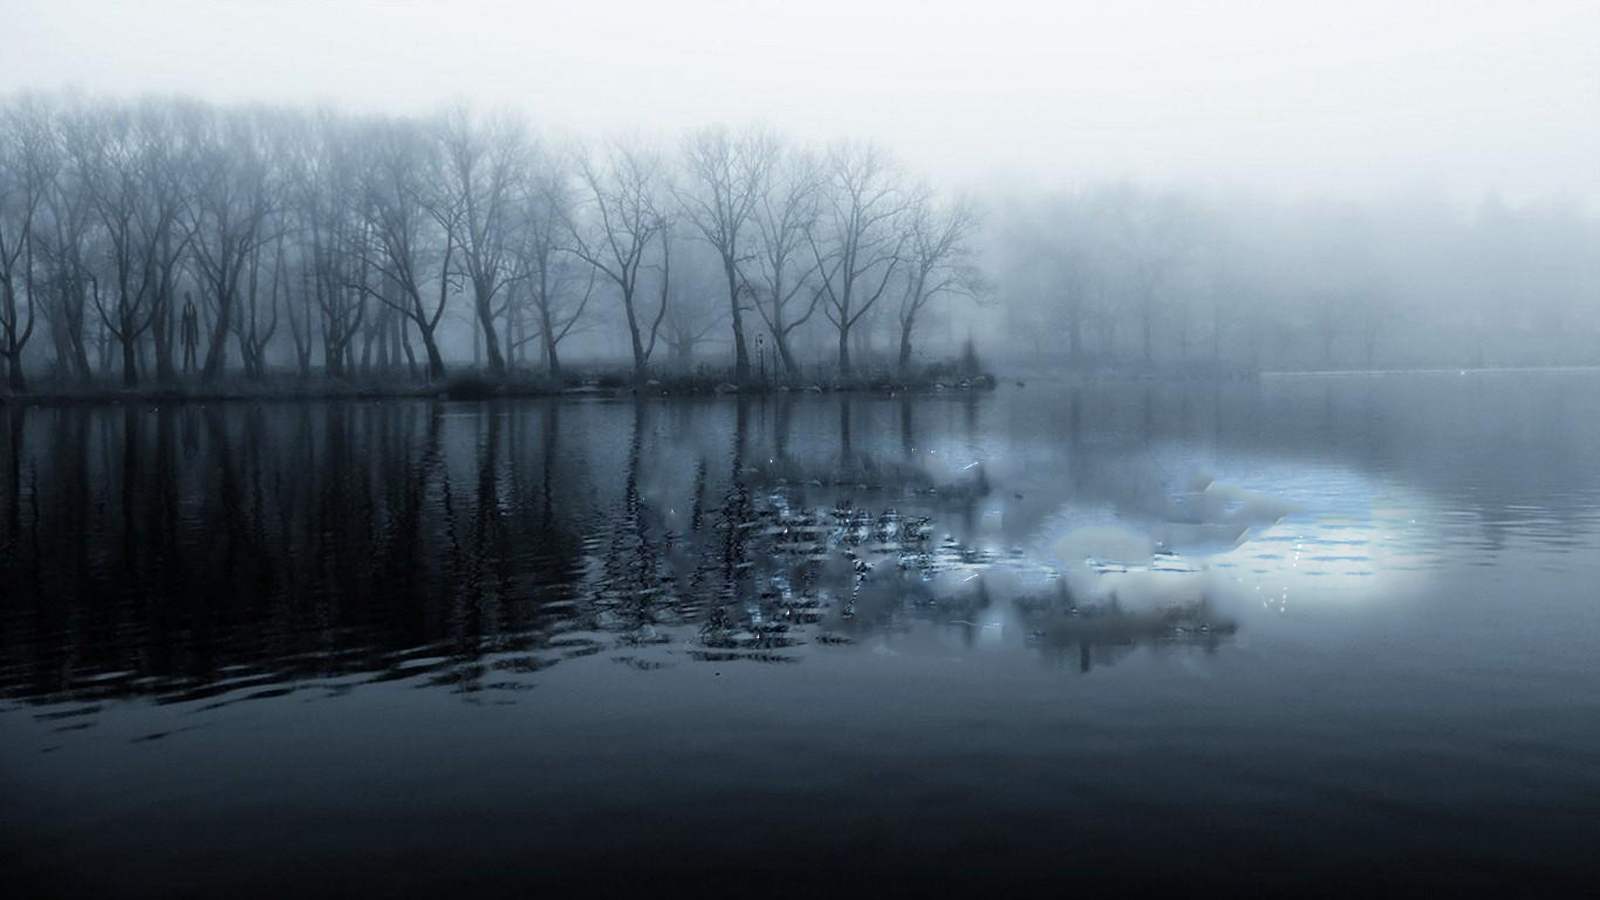 water Trees mist reflections HD Wallpaper